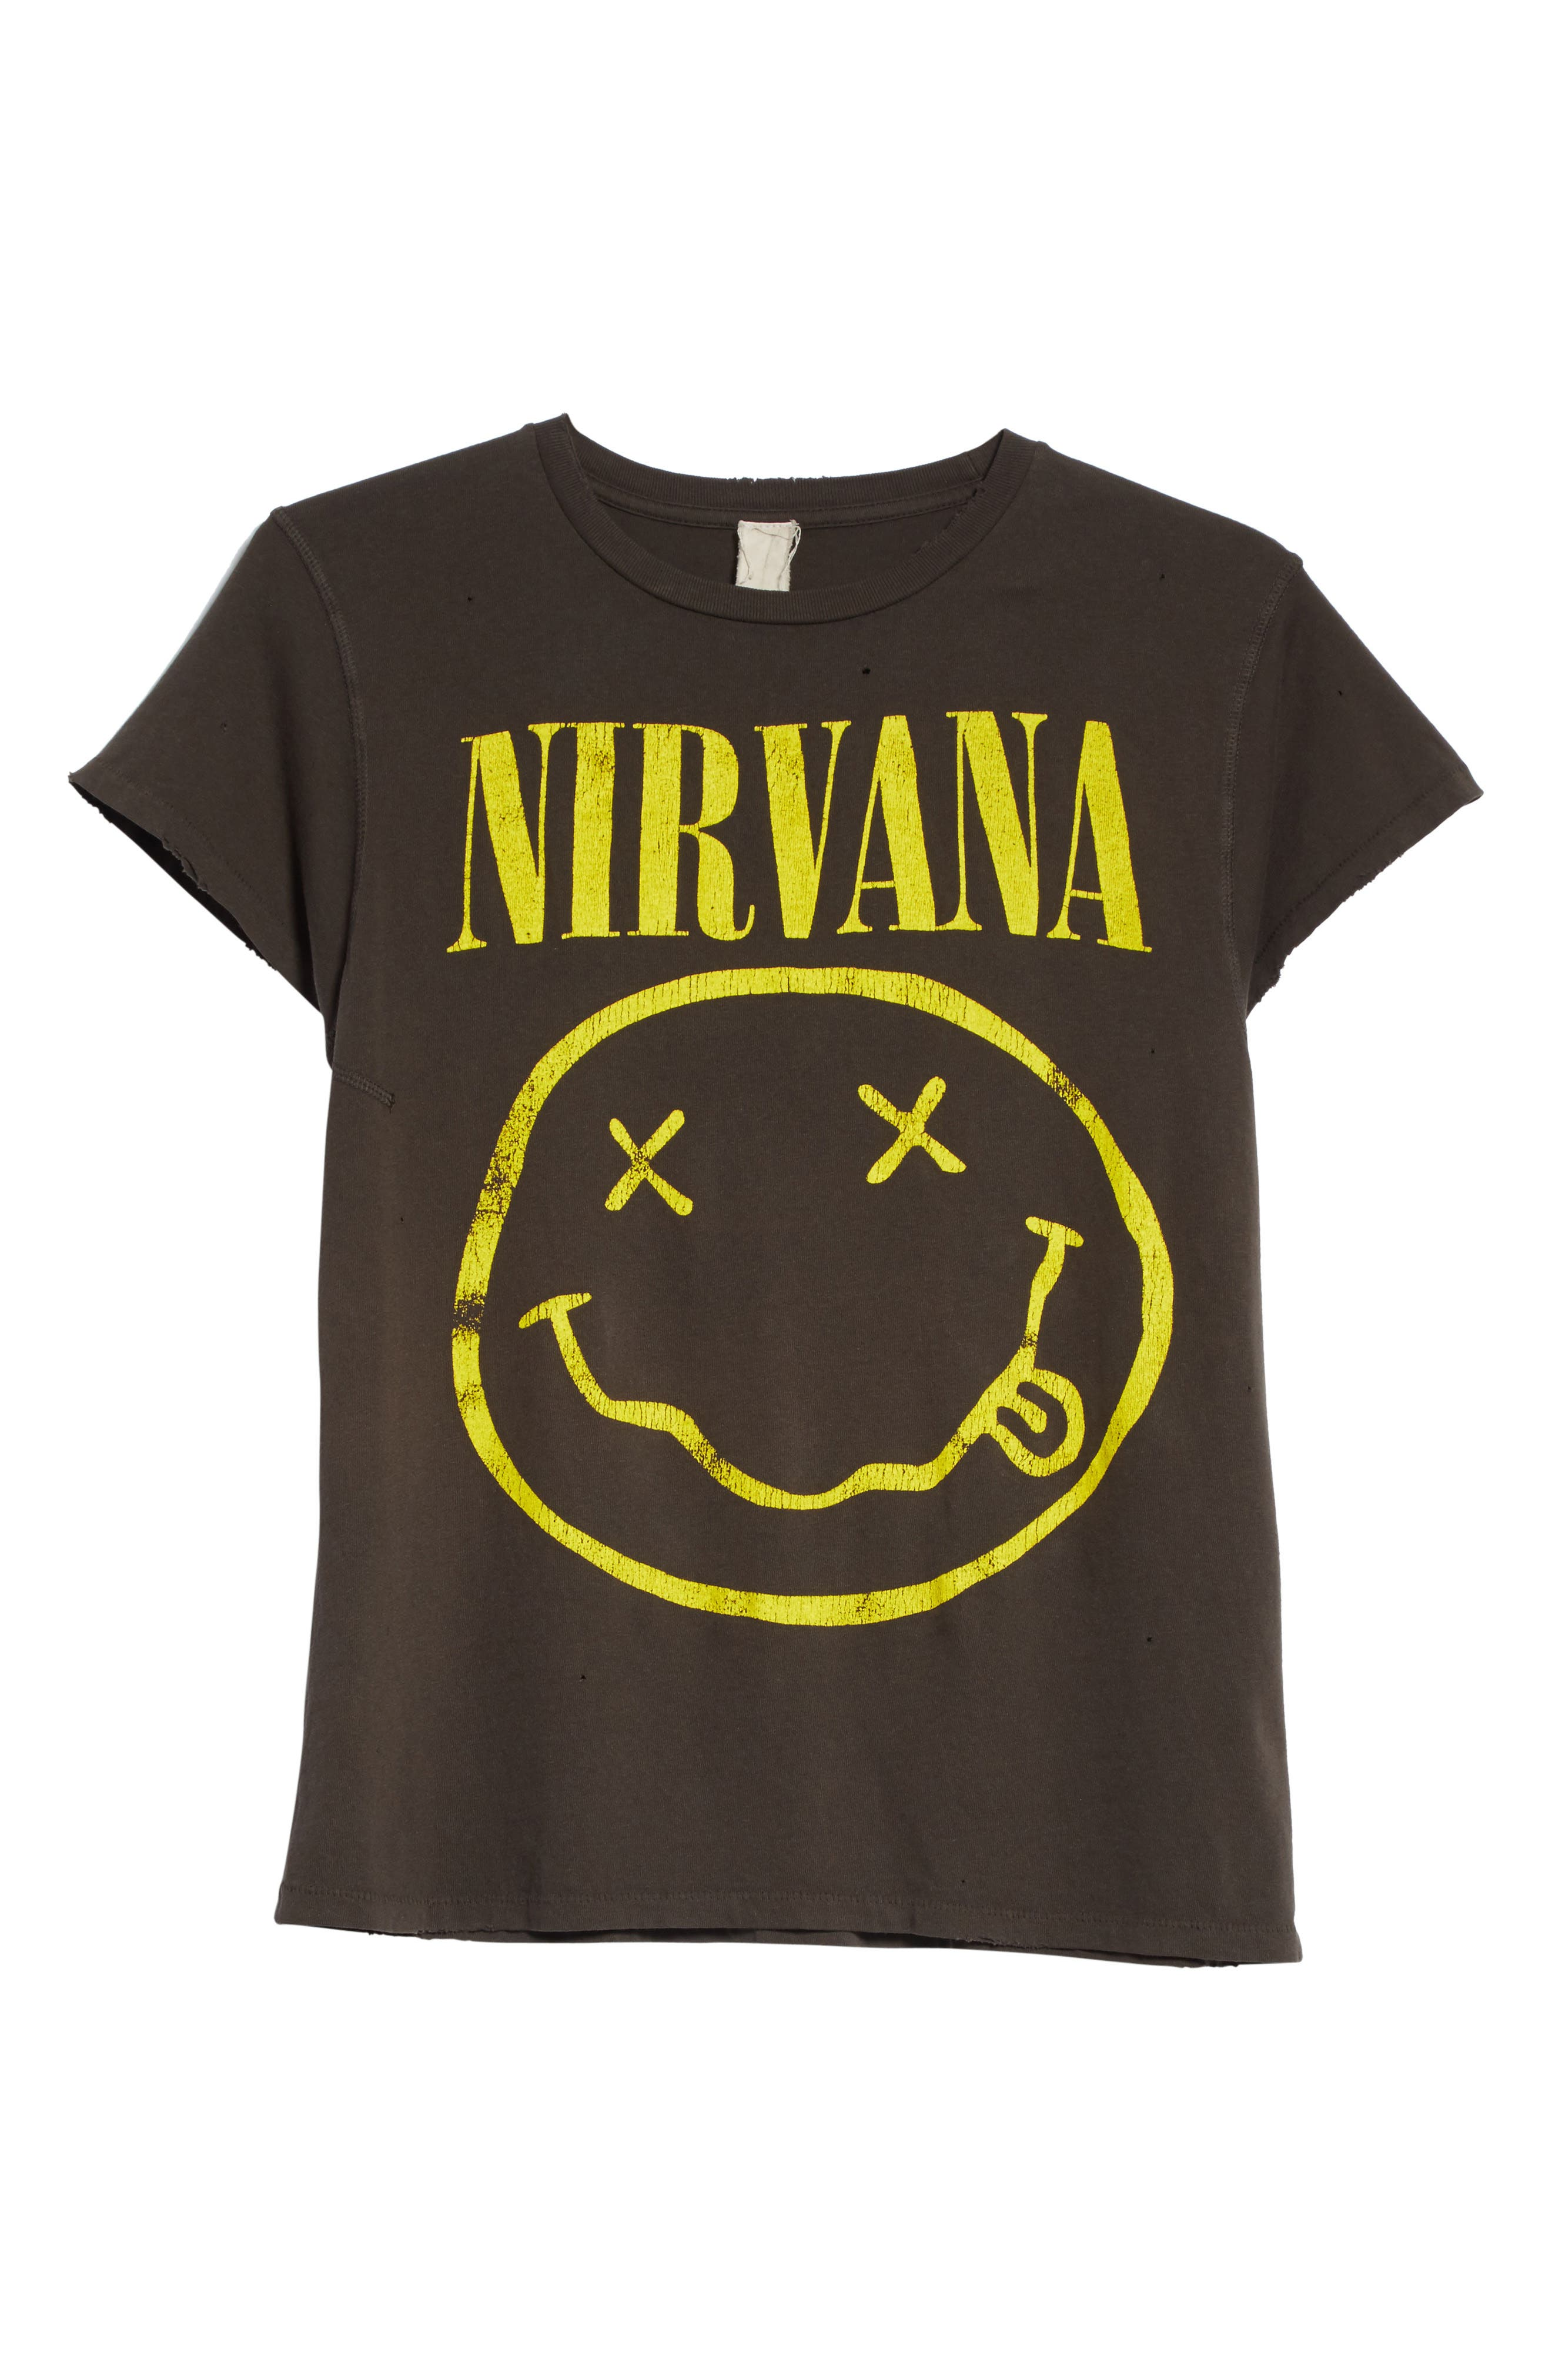 Nirvana Graphic T-Shirt,                             Alternate thumbnail 6, color,                             Dirty Black